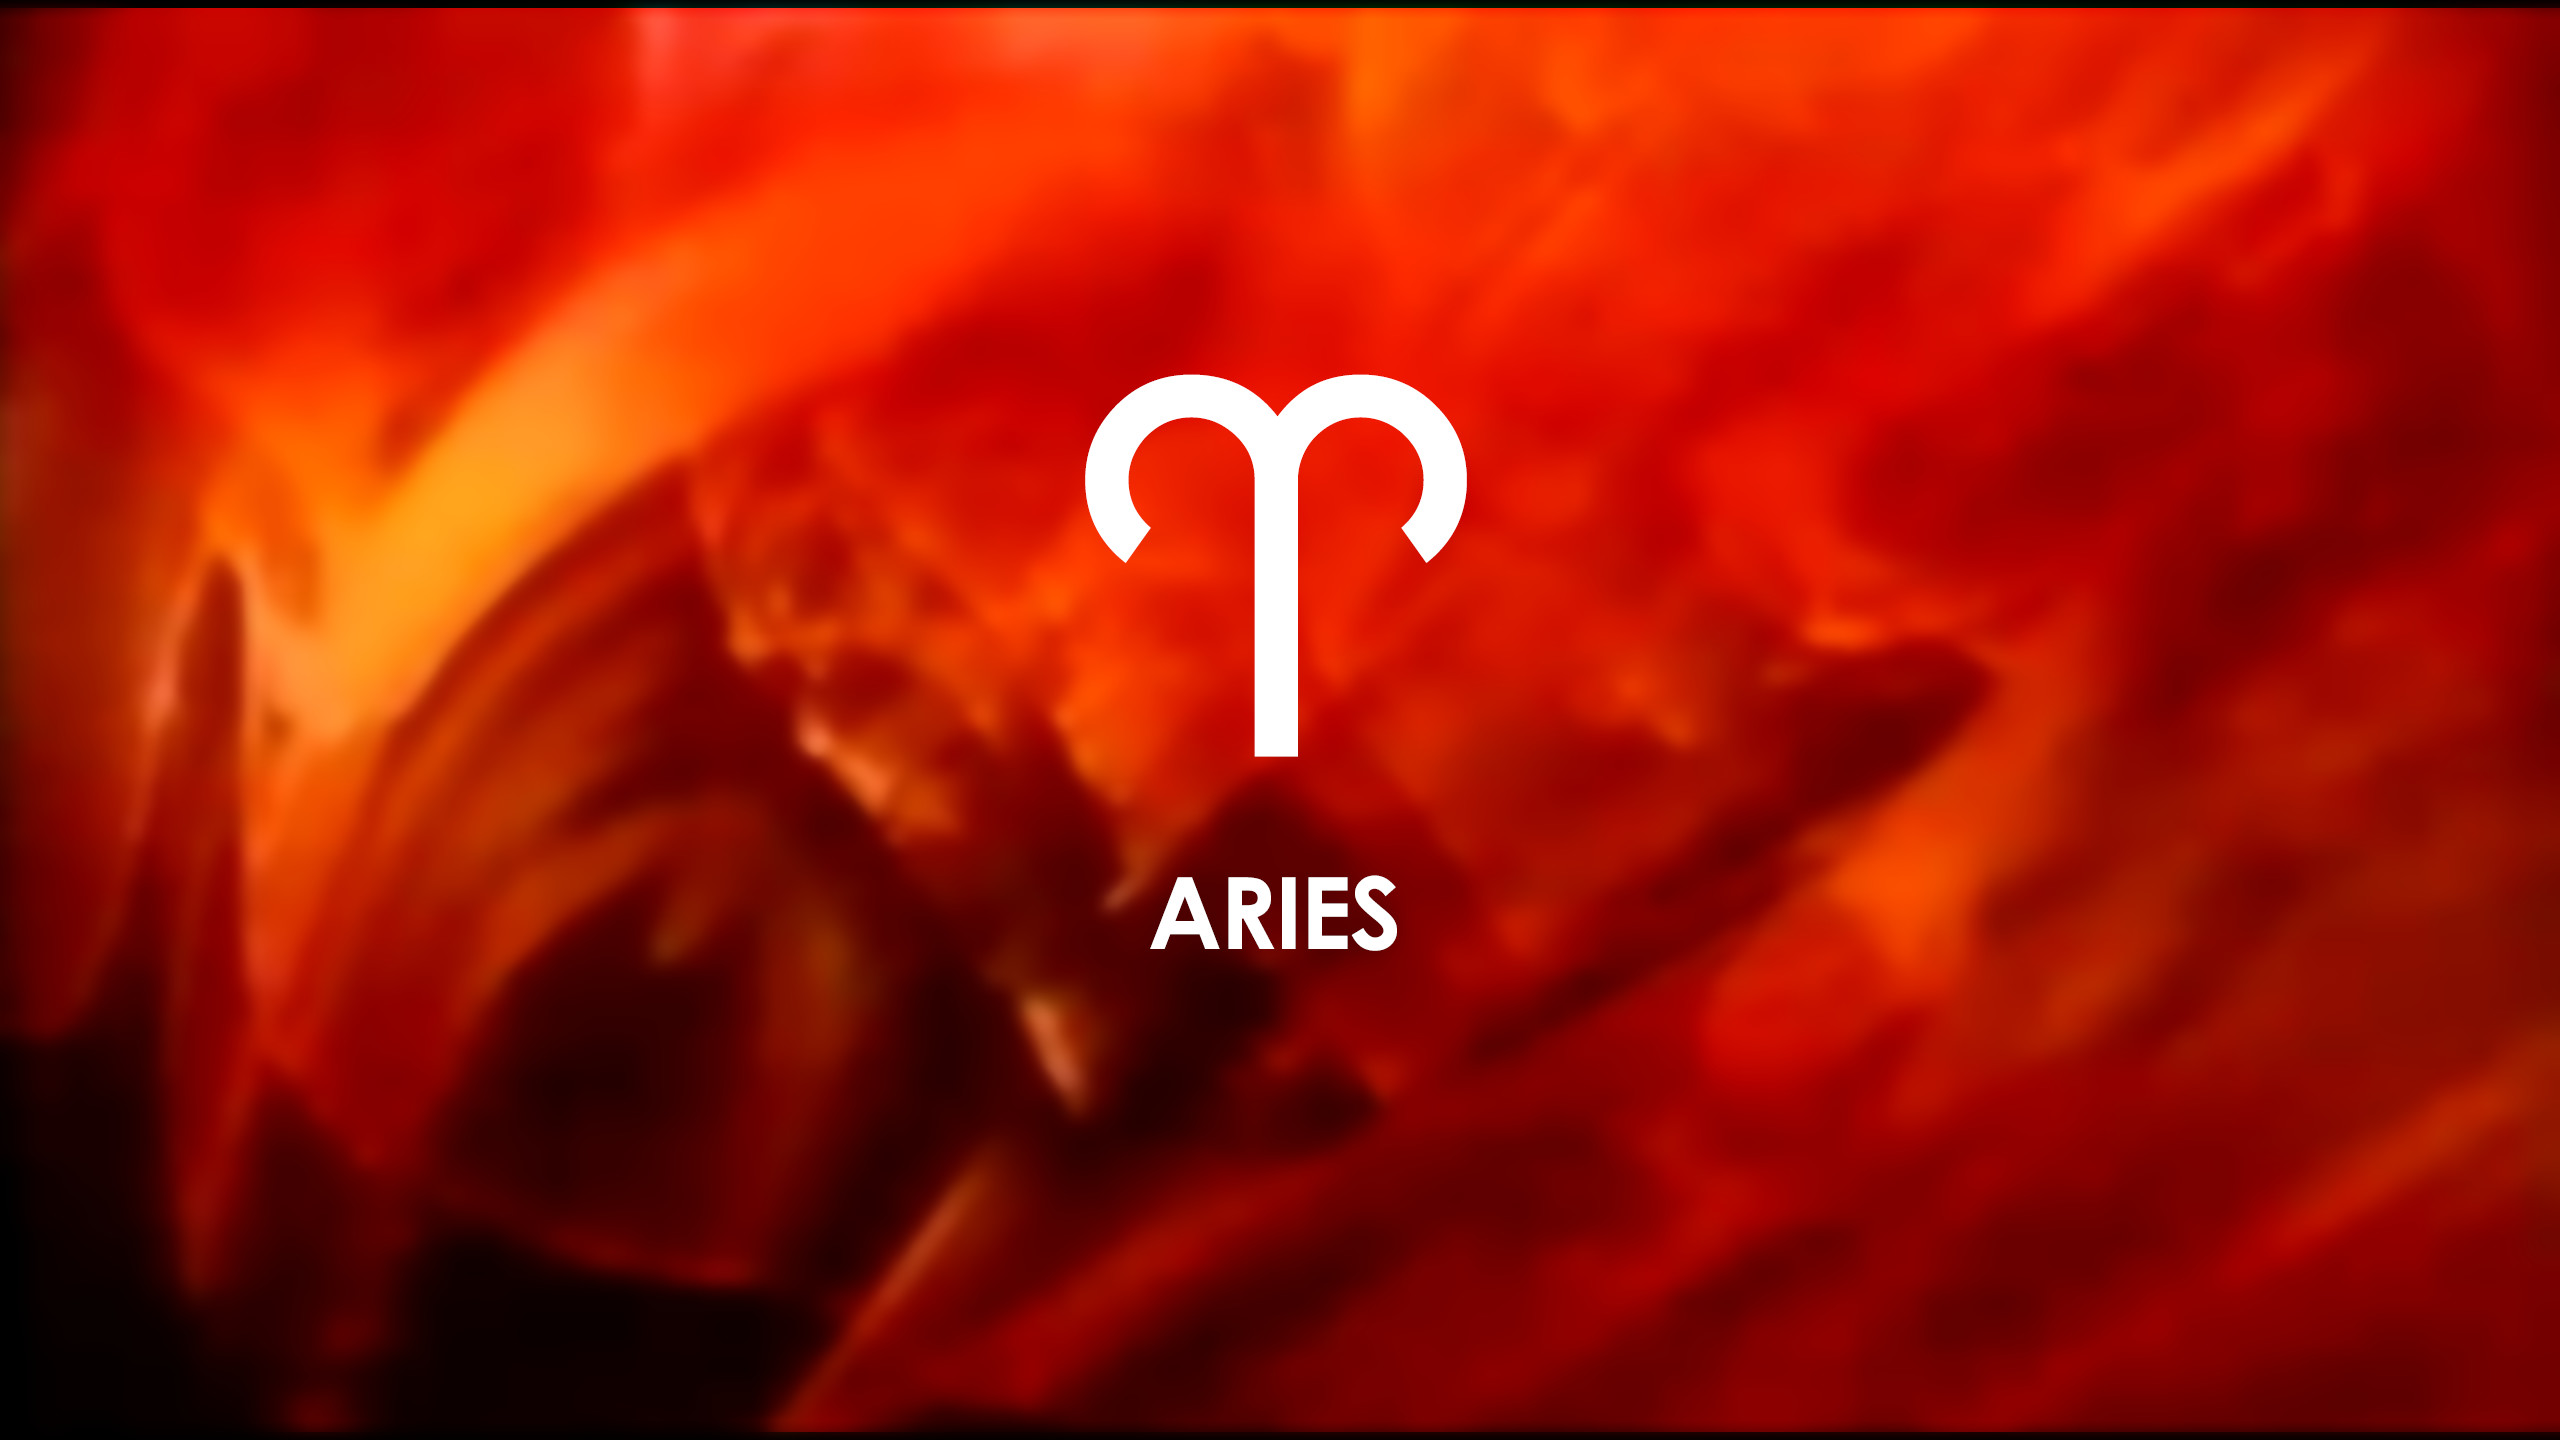 Aries Wallpapers HD 48 images 2560x1440